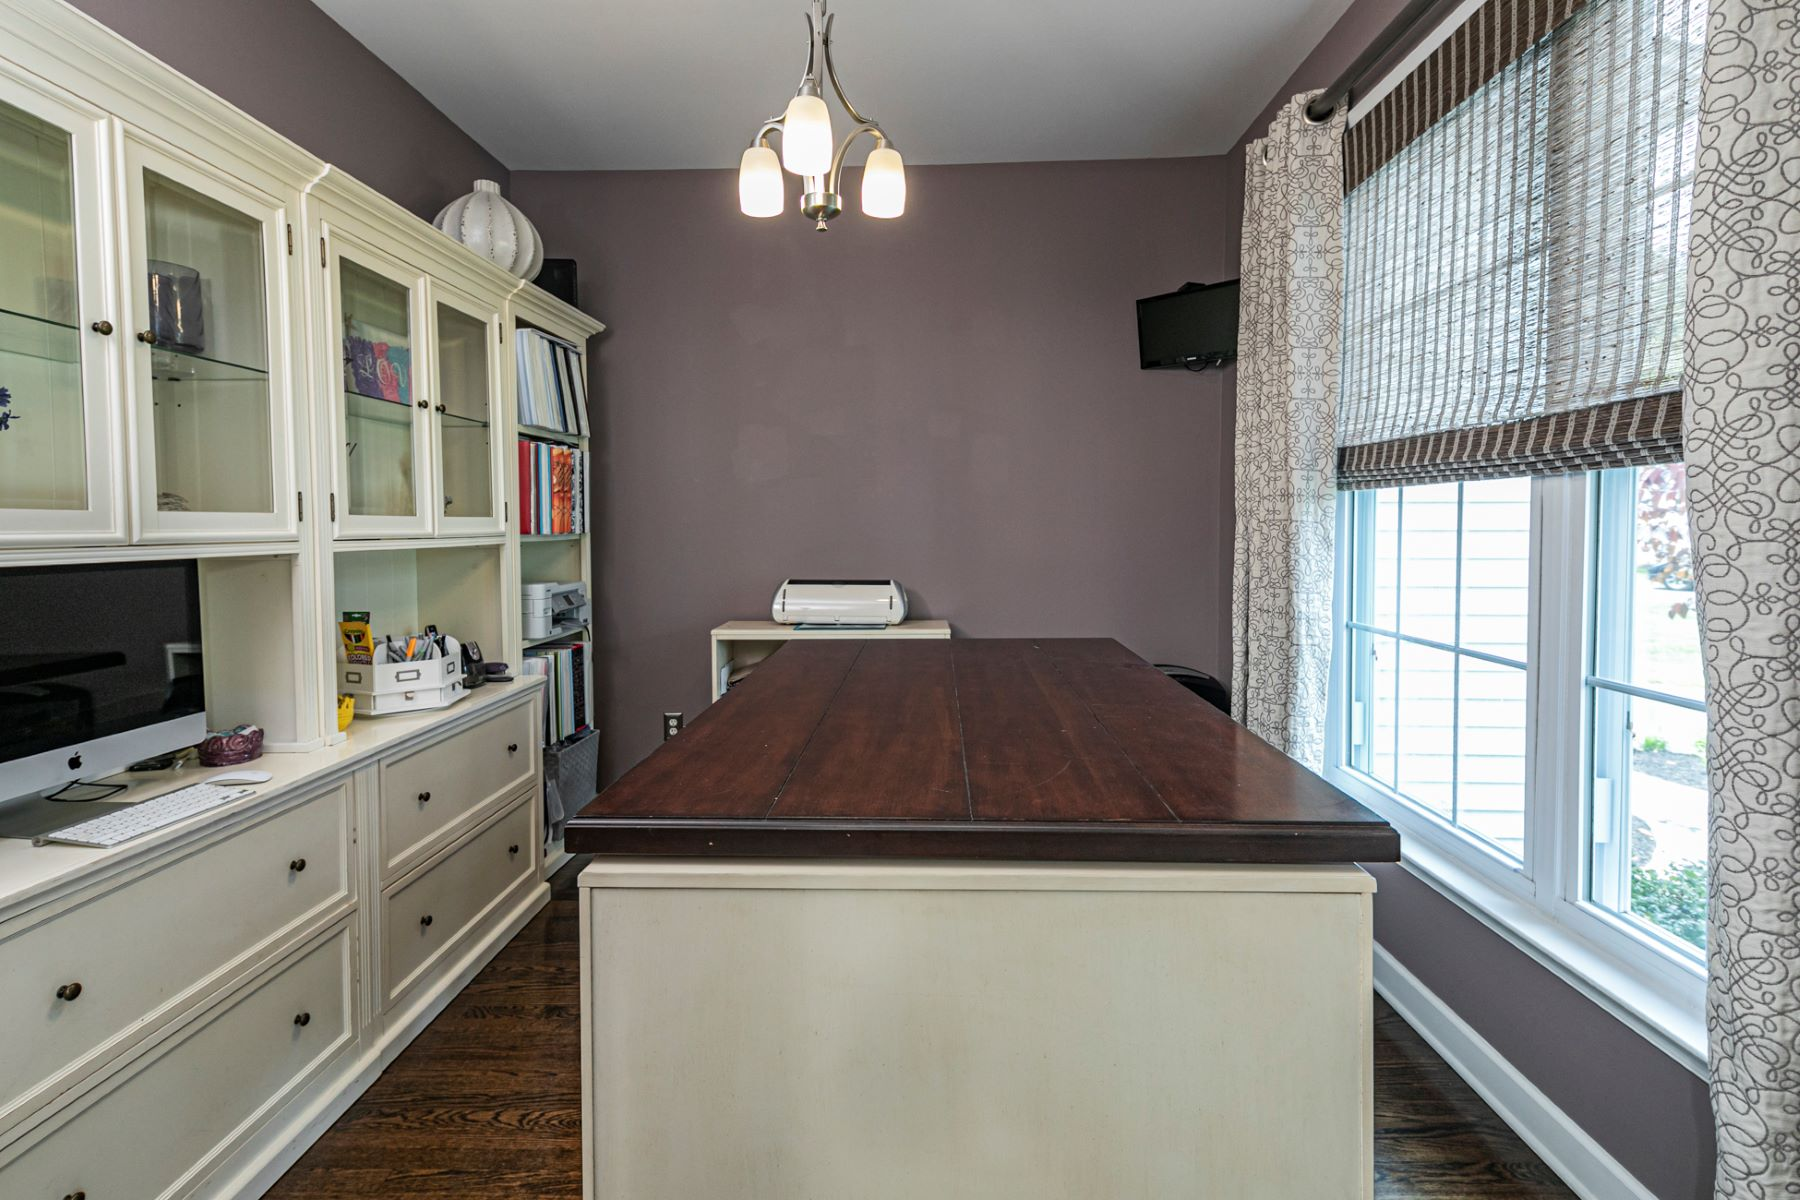 Additional photo for property listing at Sparkling Renovation To This Cul-de-sac Home 14 Wolverton Lane, Hillsborough, New Jersey 08844 United States